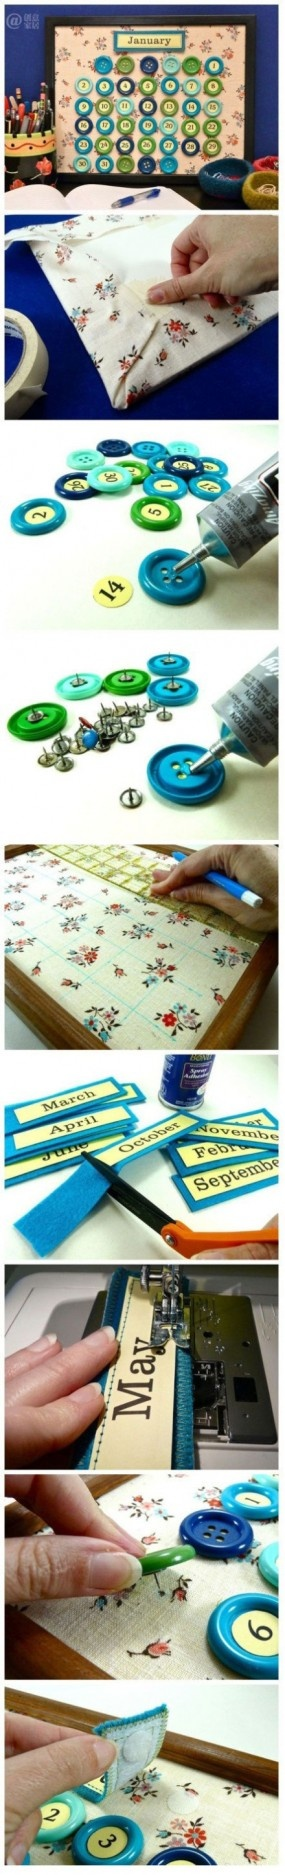 Diy Calendar Numbers : Best images about cool calendars on pinterest nice